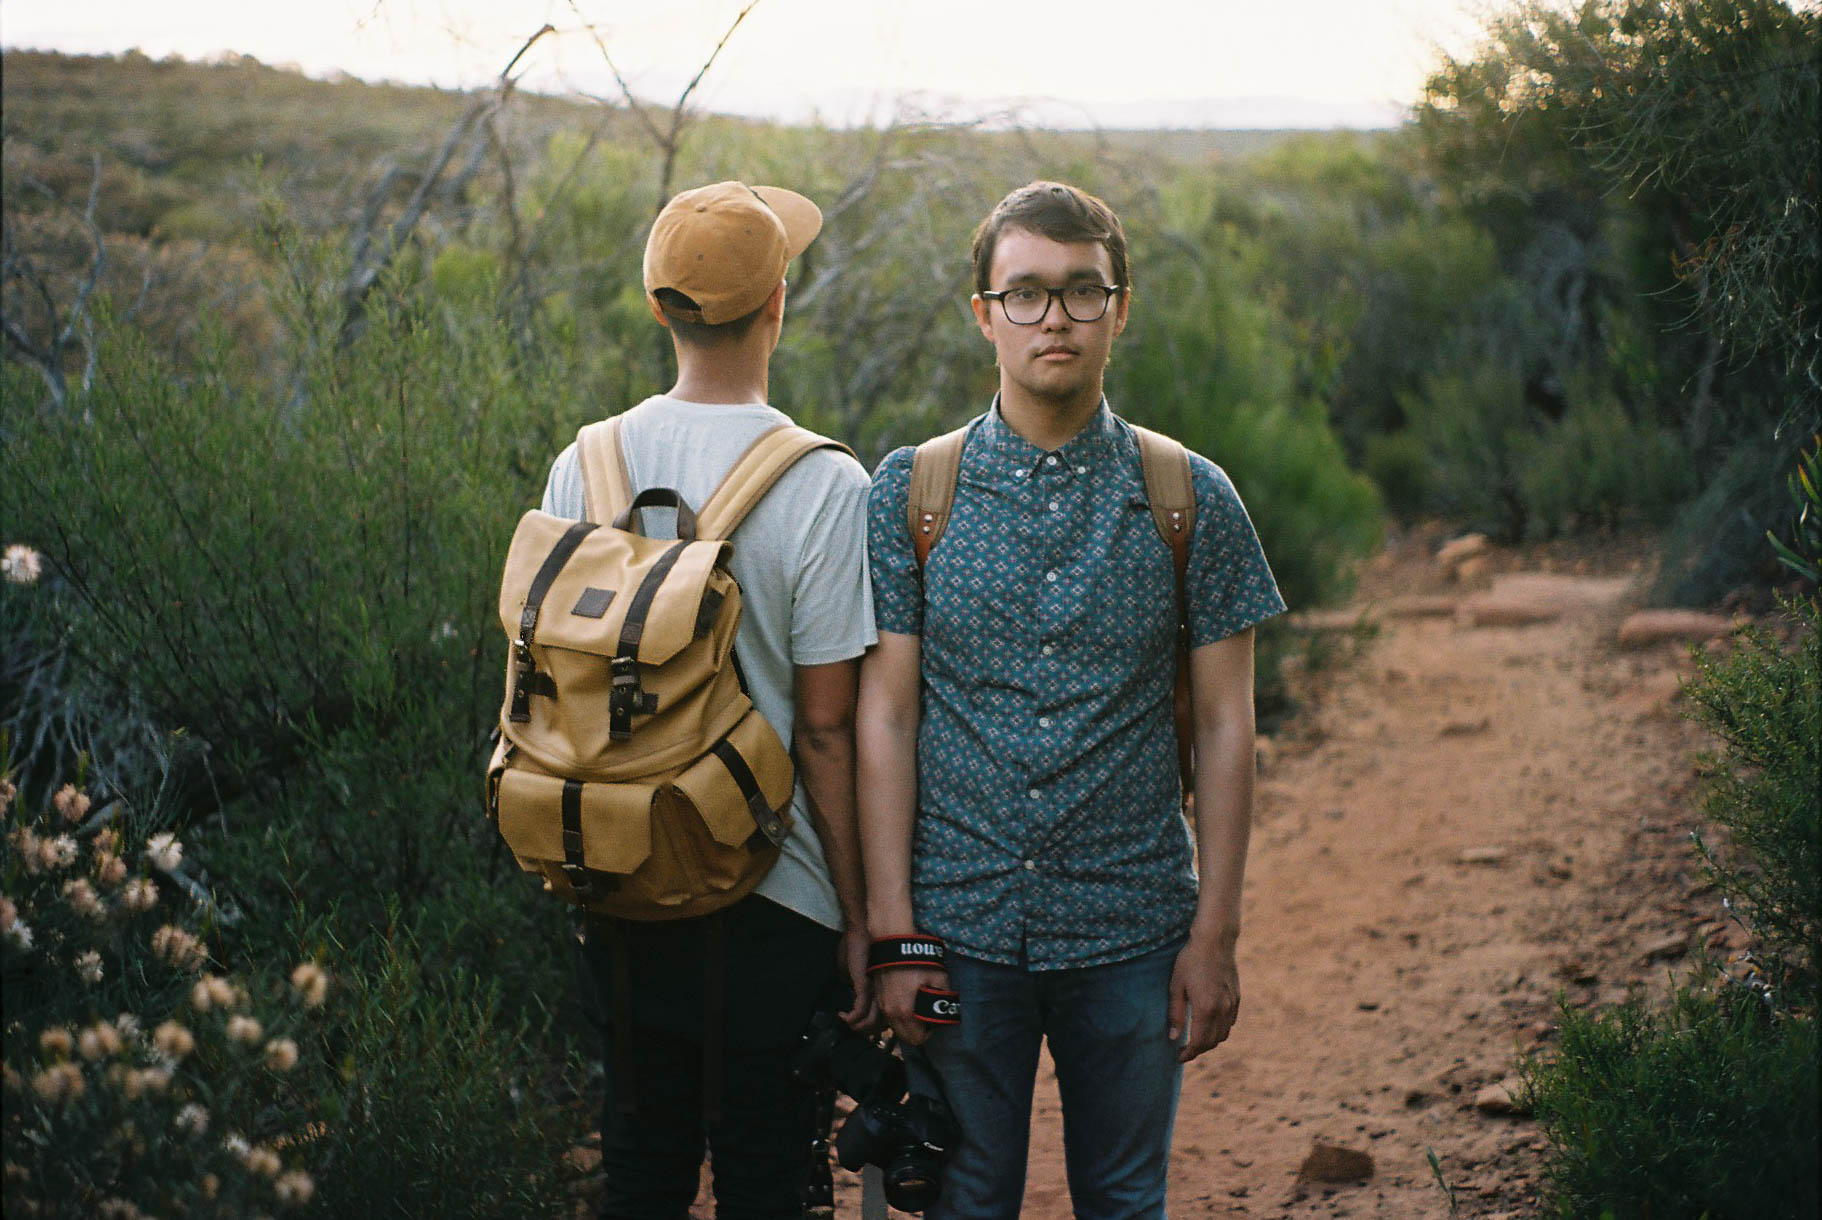 Kalbarri Z Bend Hipster Portrait Analogue Travel Photographer